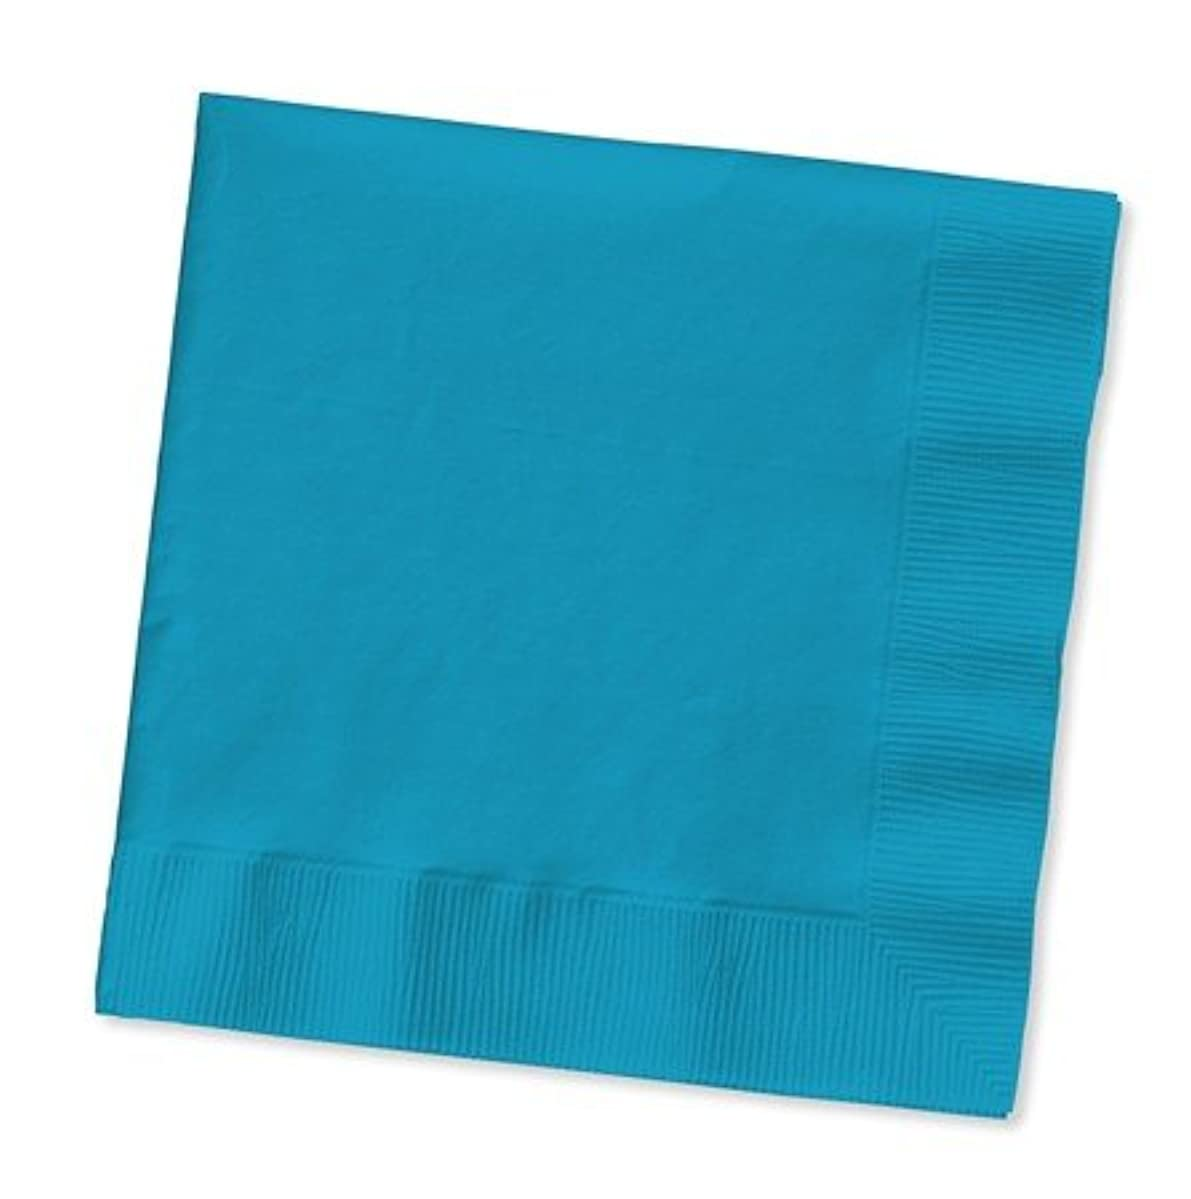 100 gorgeous Turquoise beverage/cocktail napkins for wedding/party/event, 2ply, disposable, 5